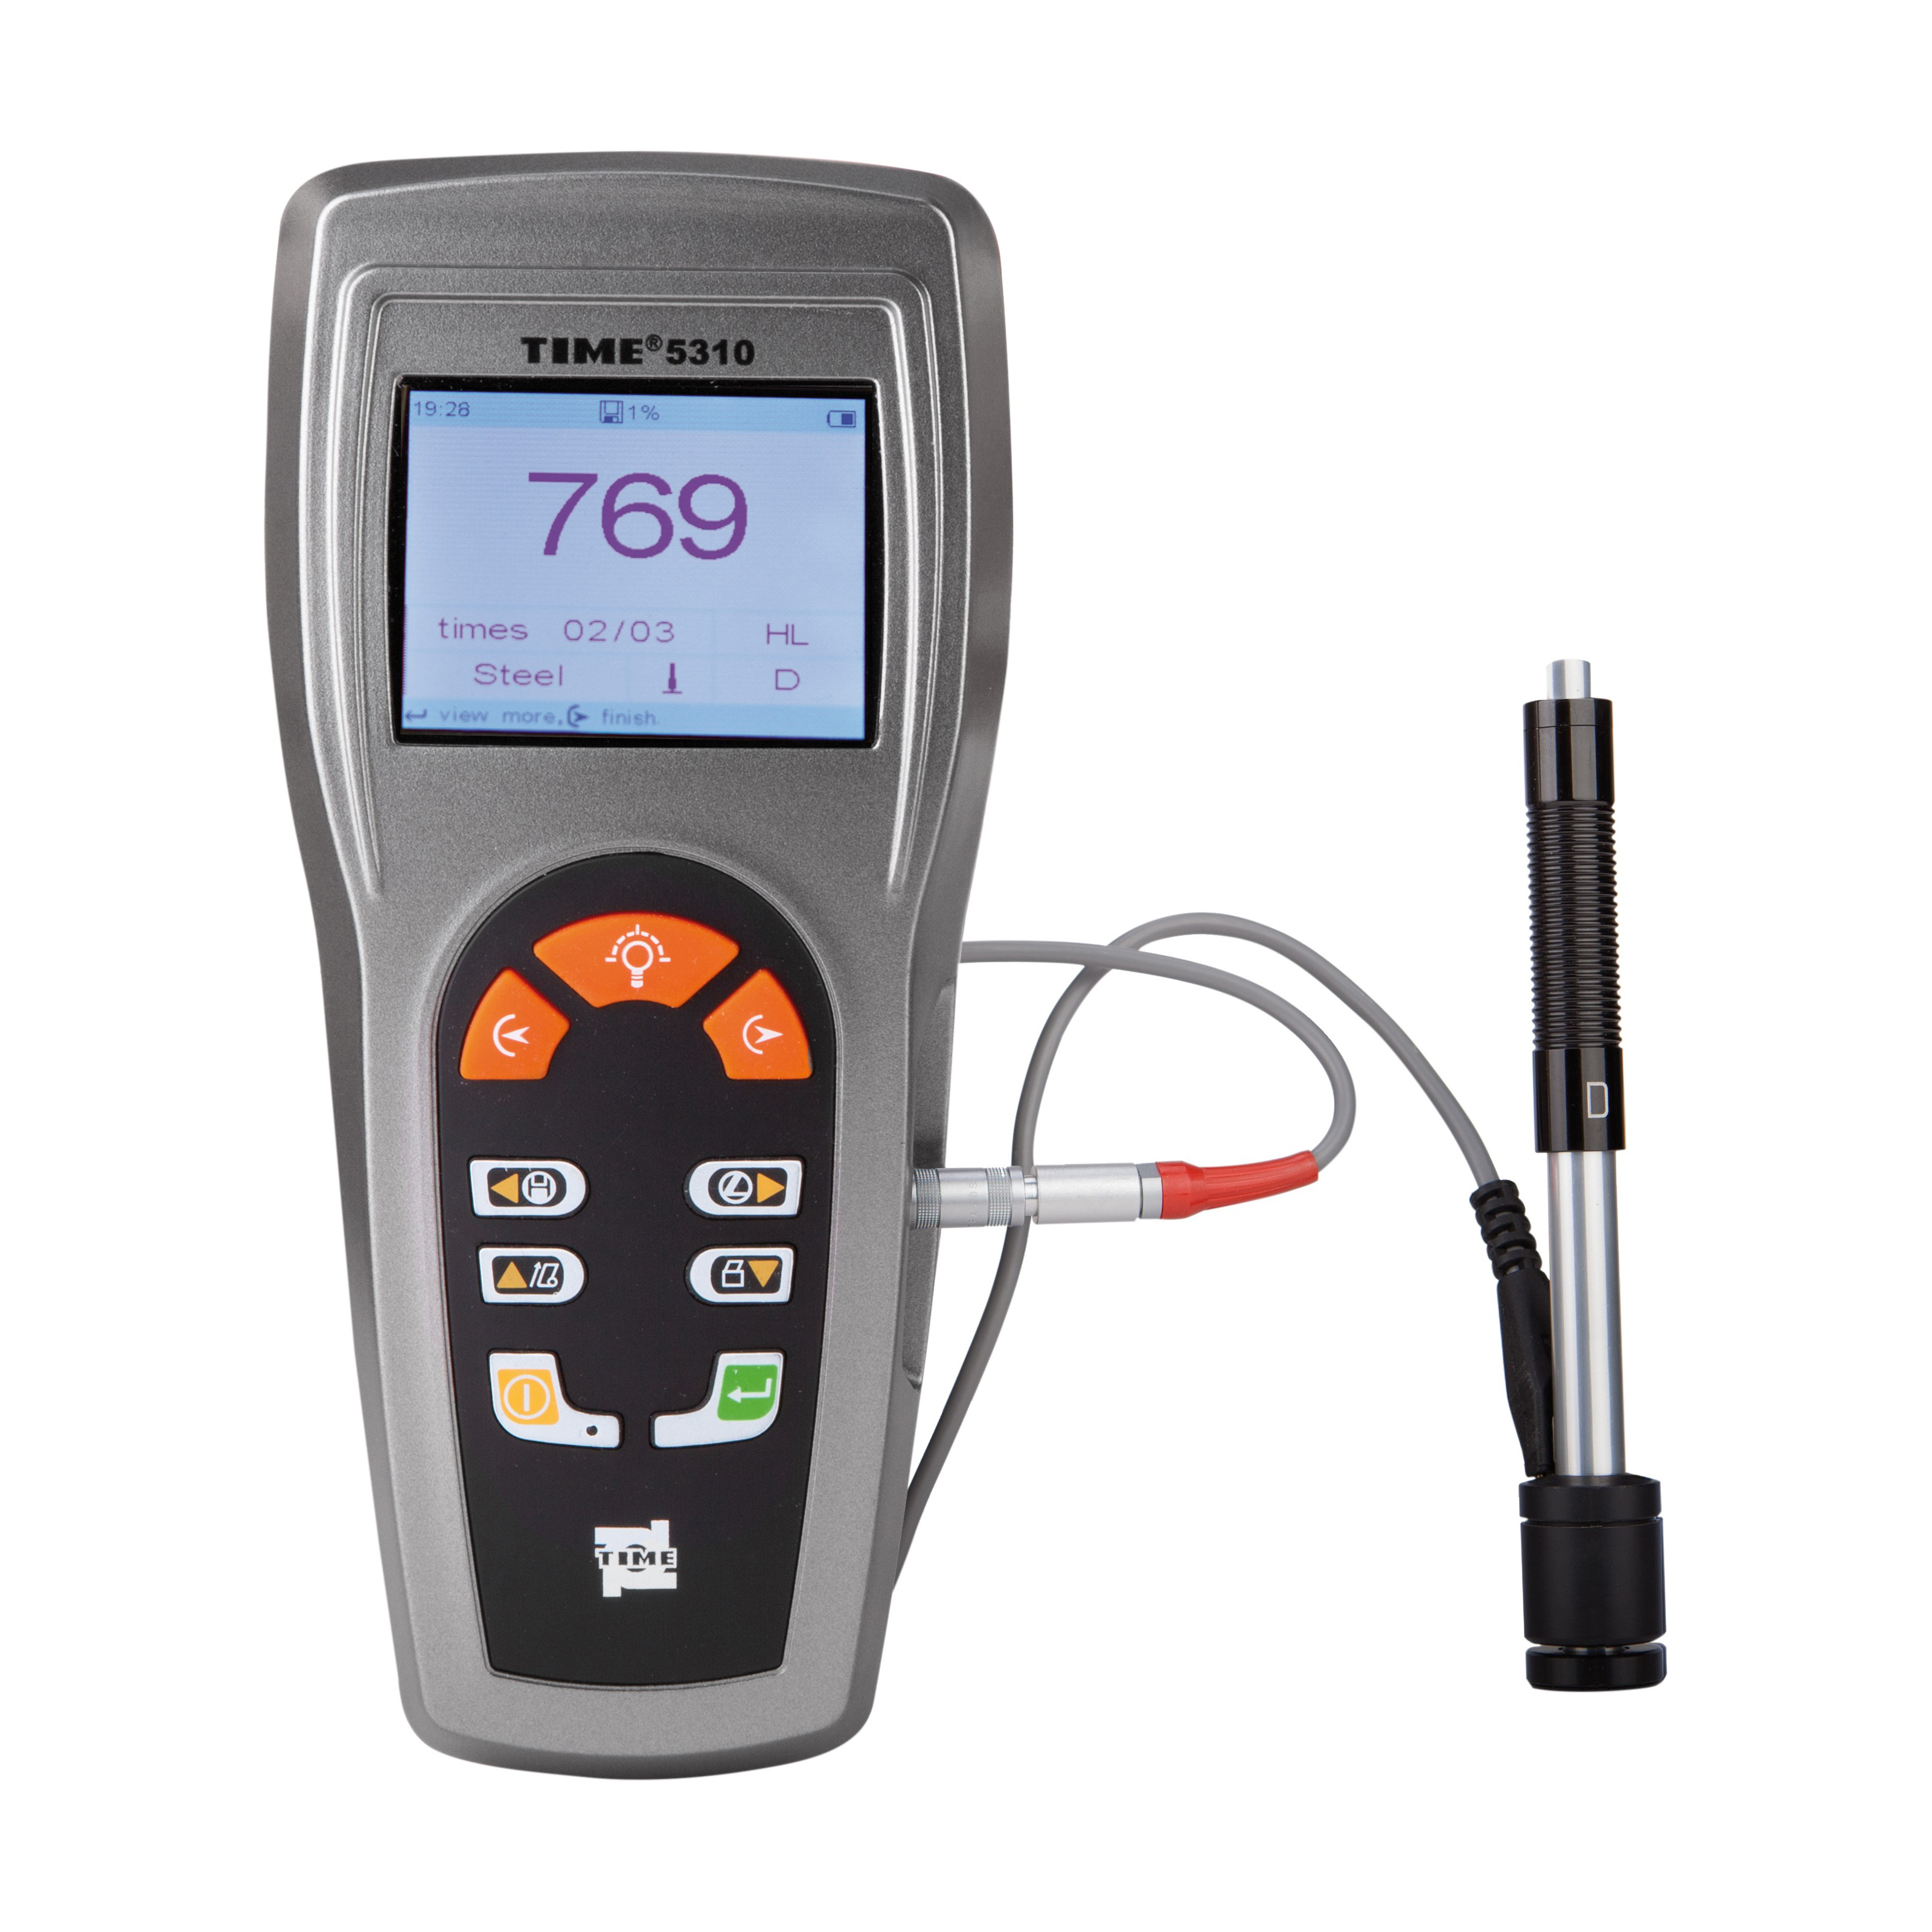 TIME®5310 - Portable Hardness Tester